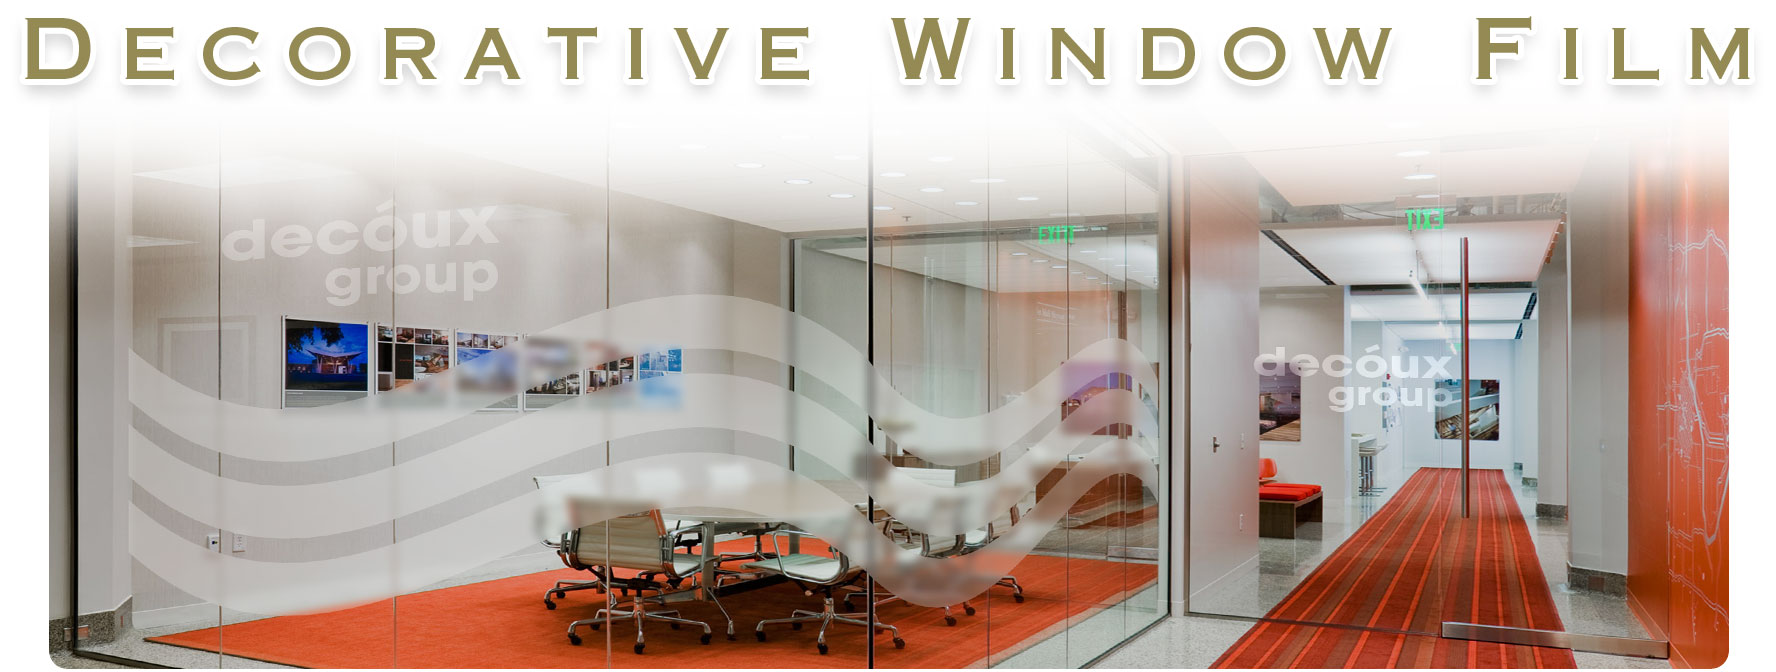 midas window film always working on offering the widest selection of films to our customers has a complete decorative film line with beautiful designs - Decorative Films